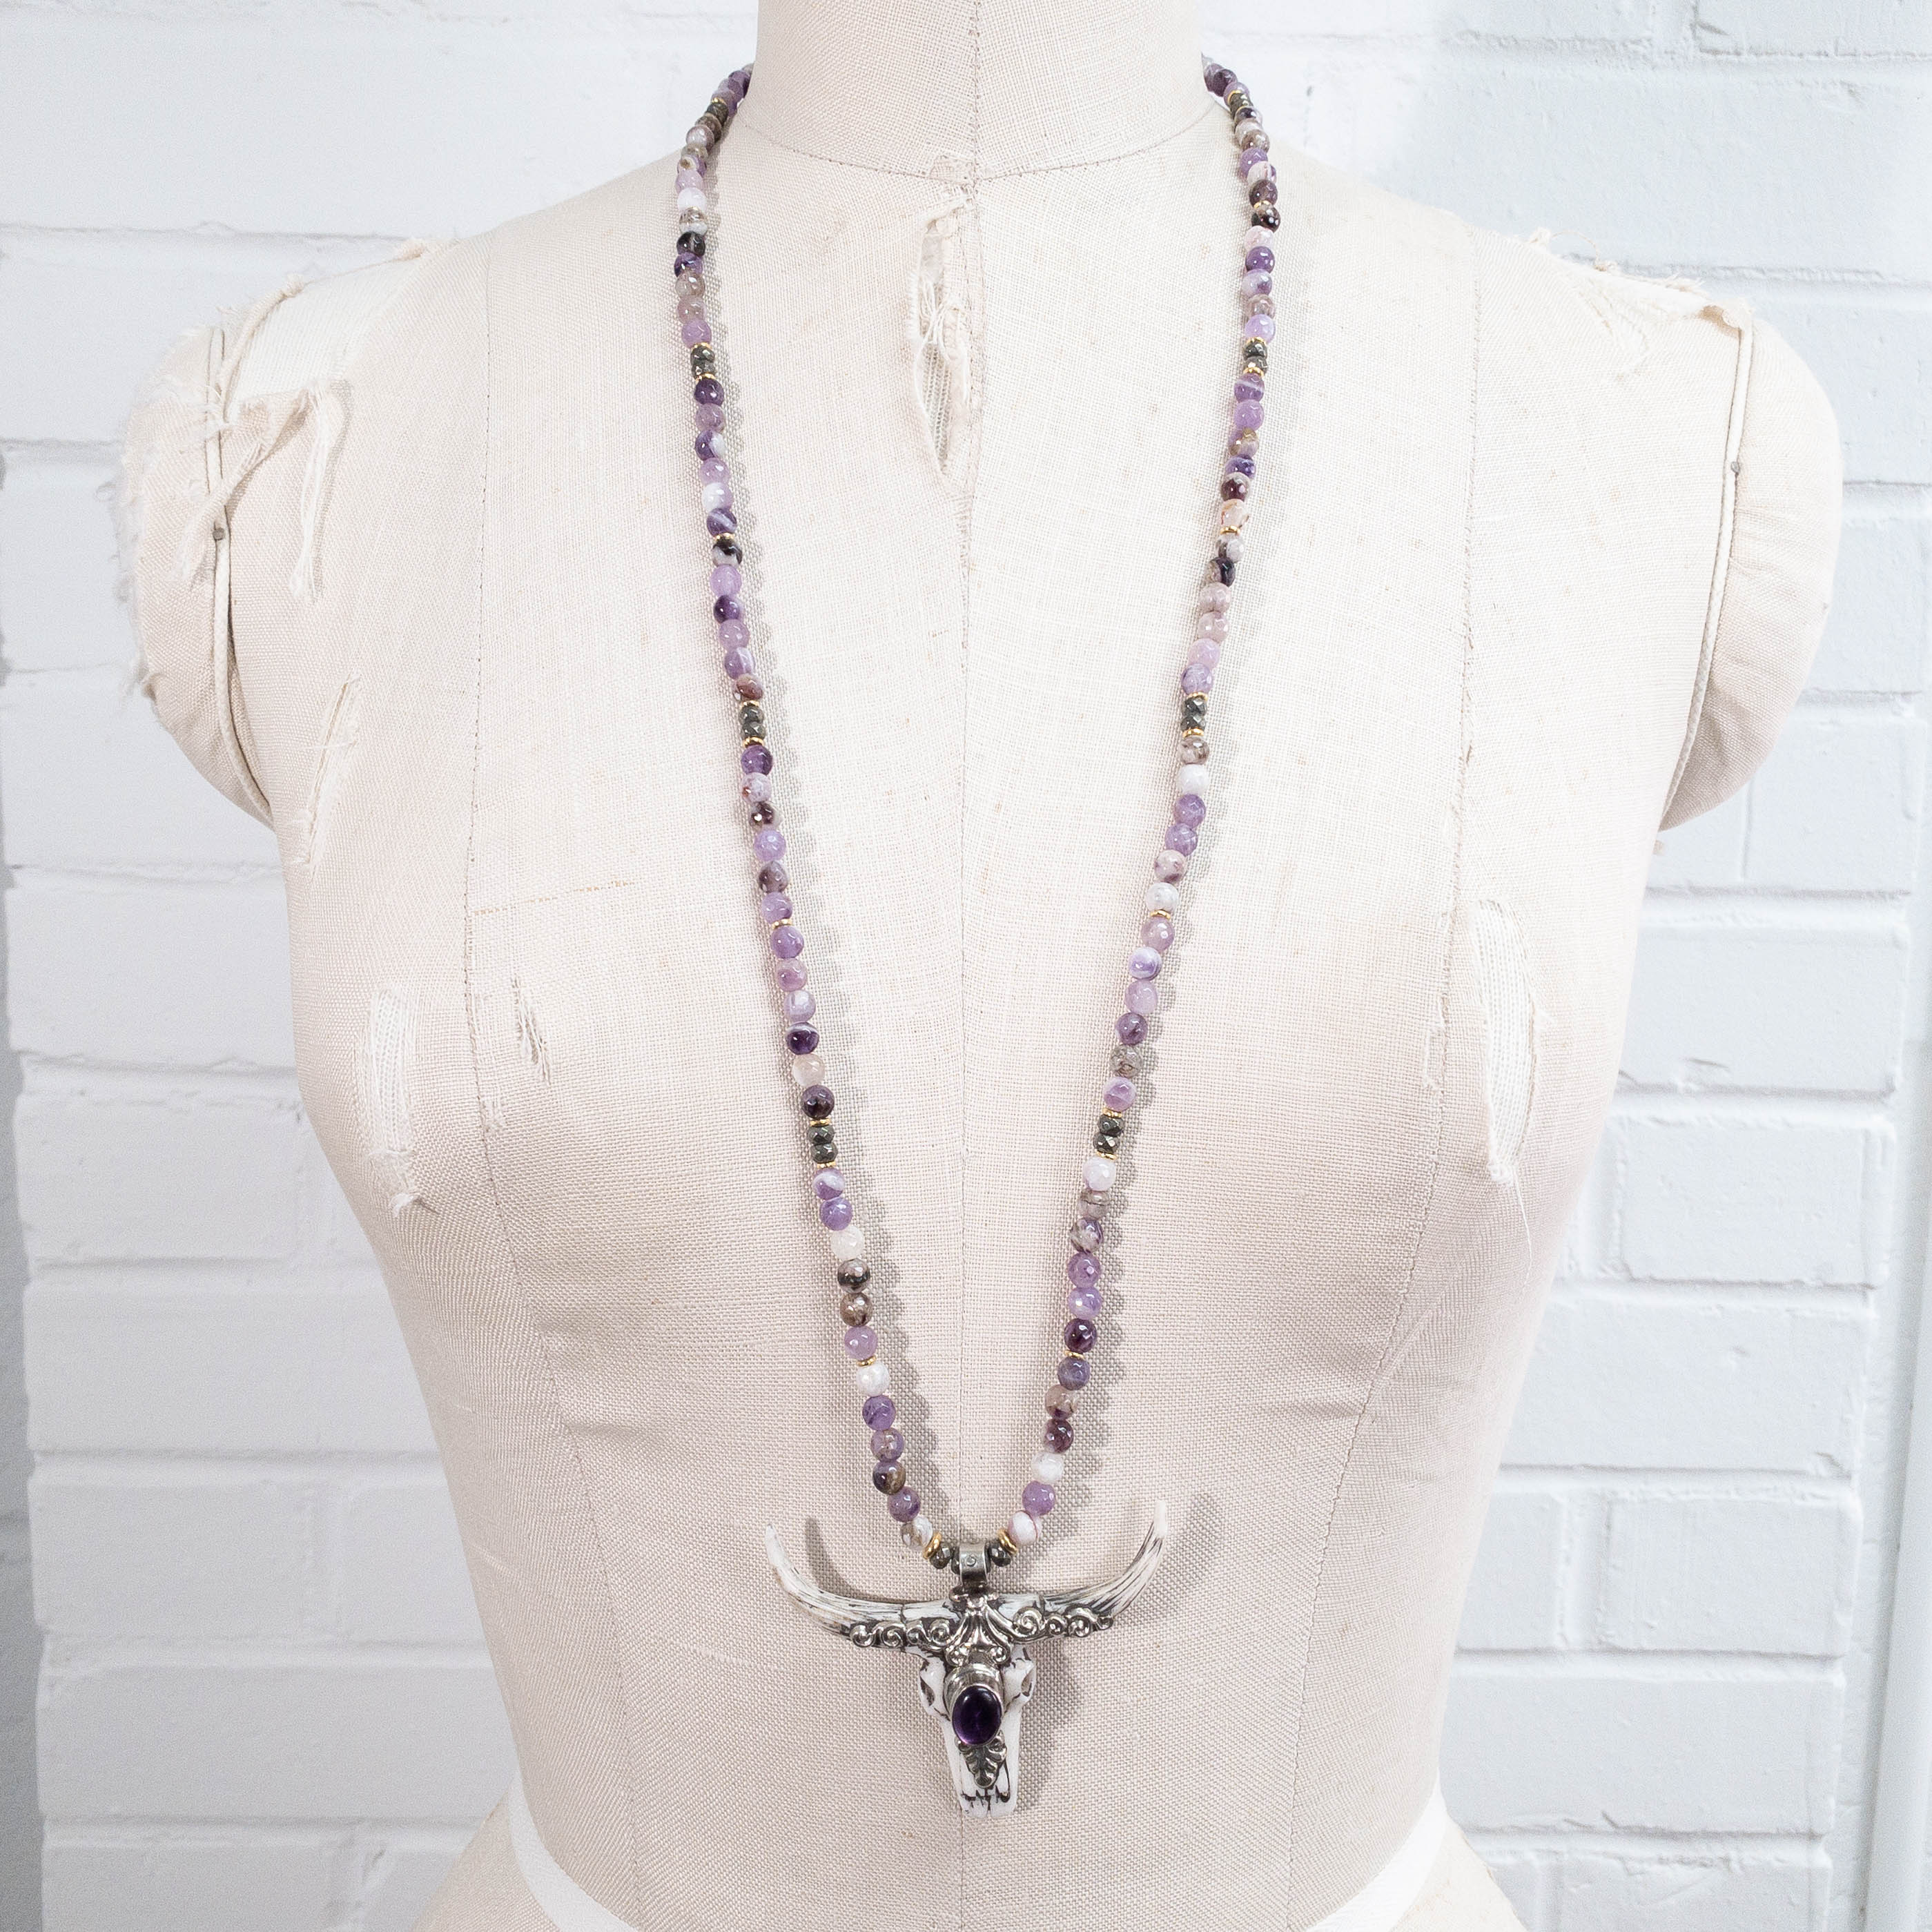 Nepali Repousse Longhorn Skull Pendant on Amethyst Necklace